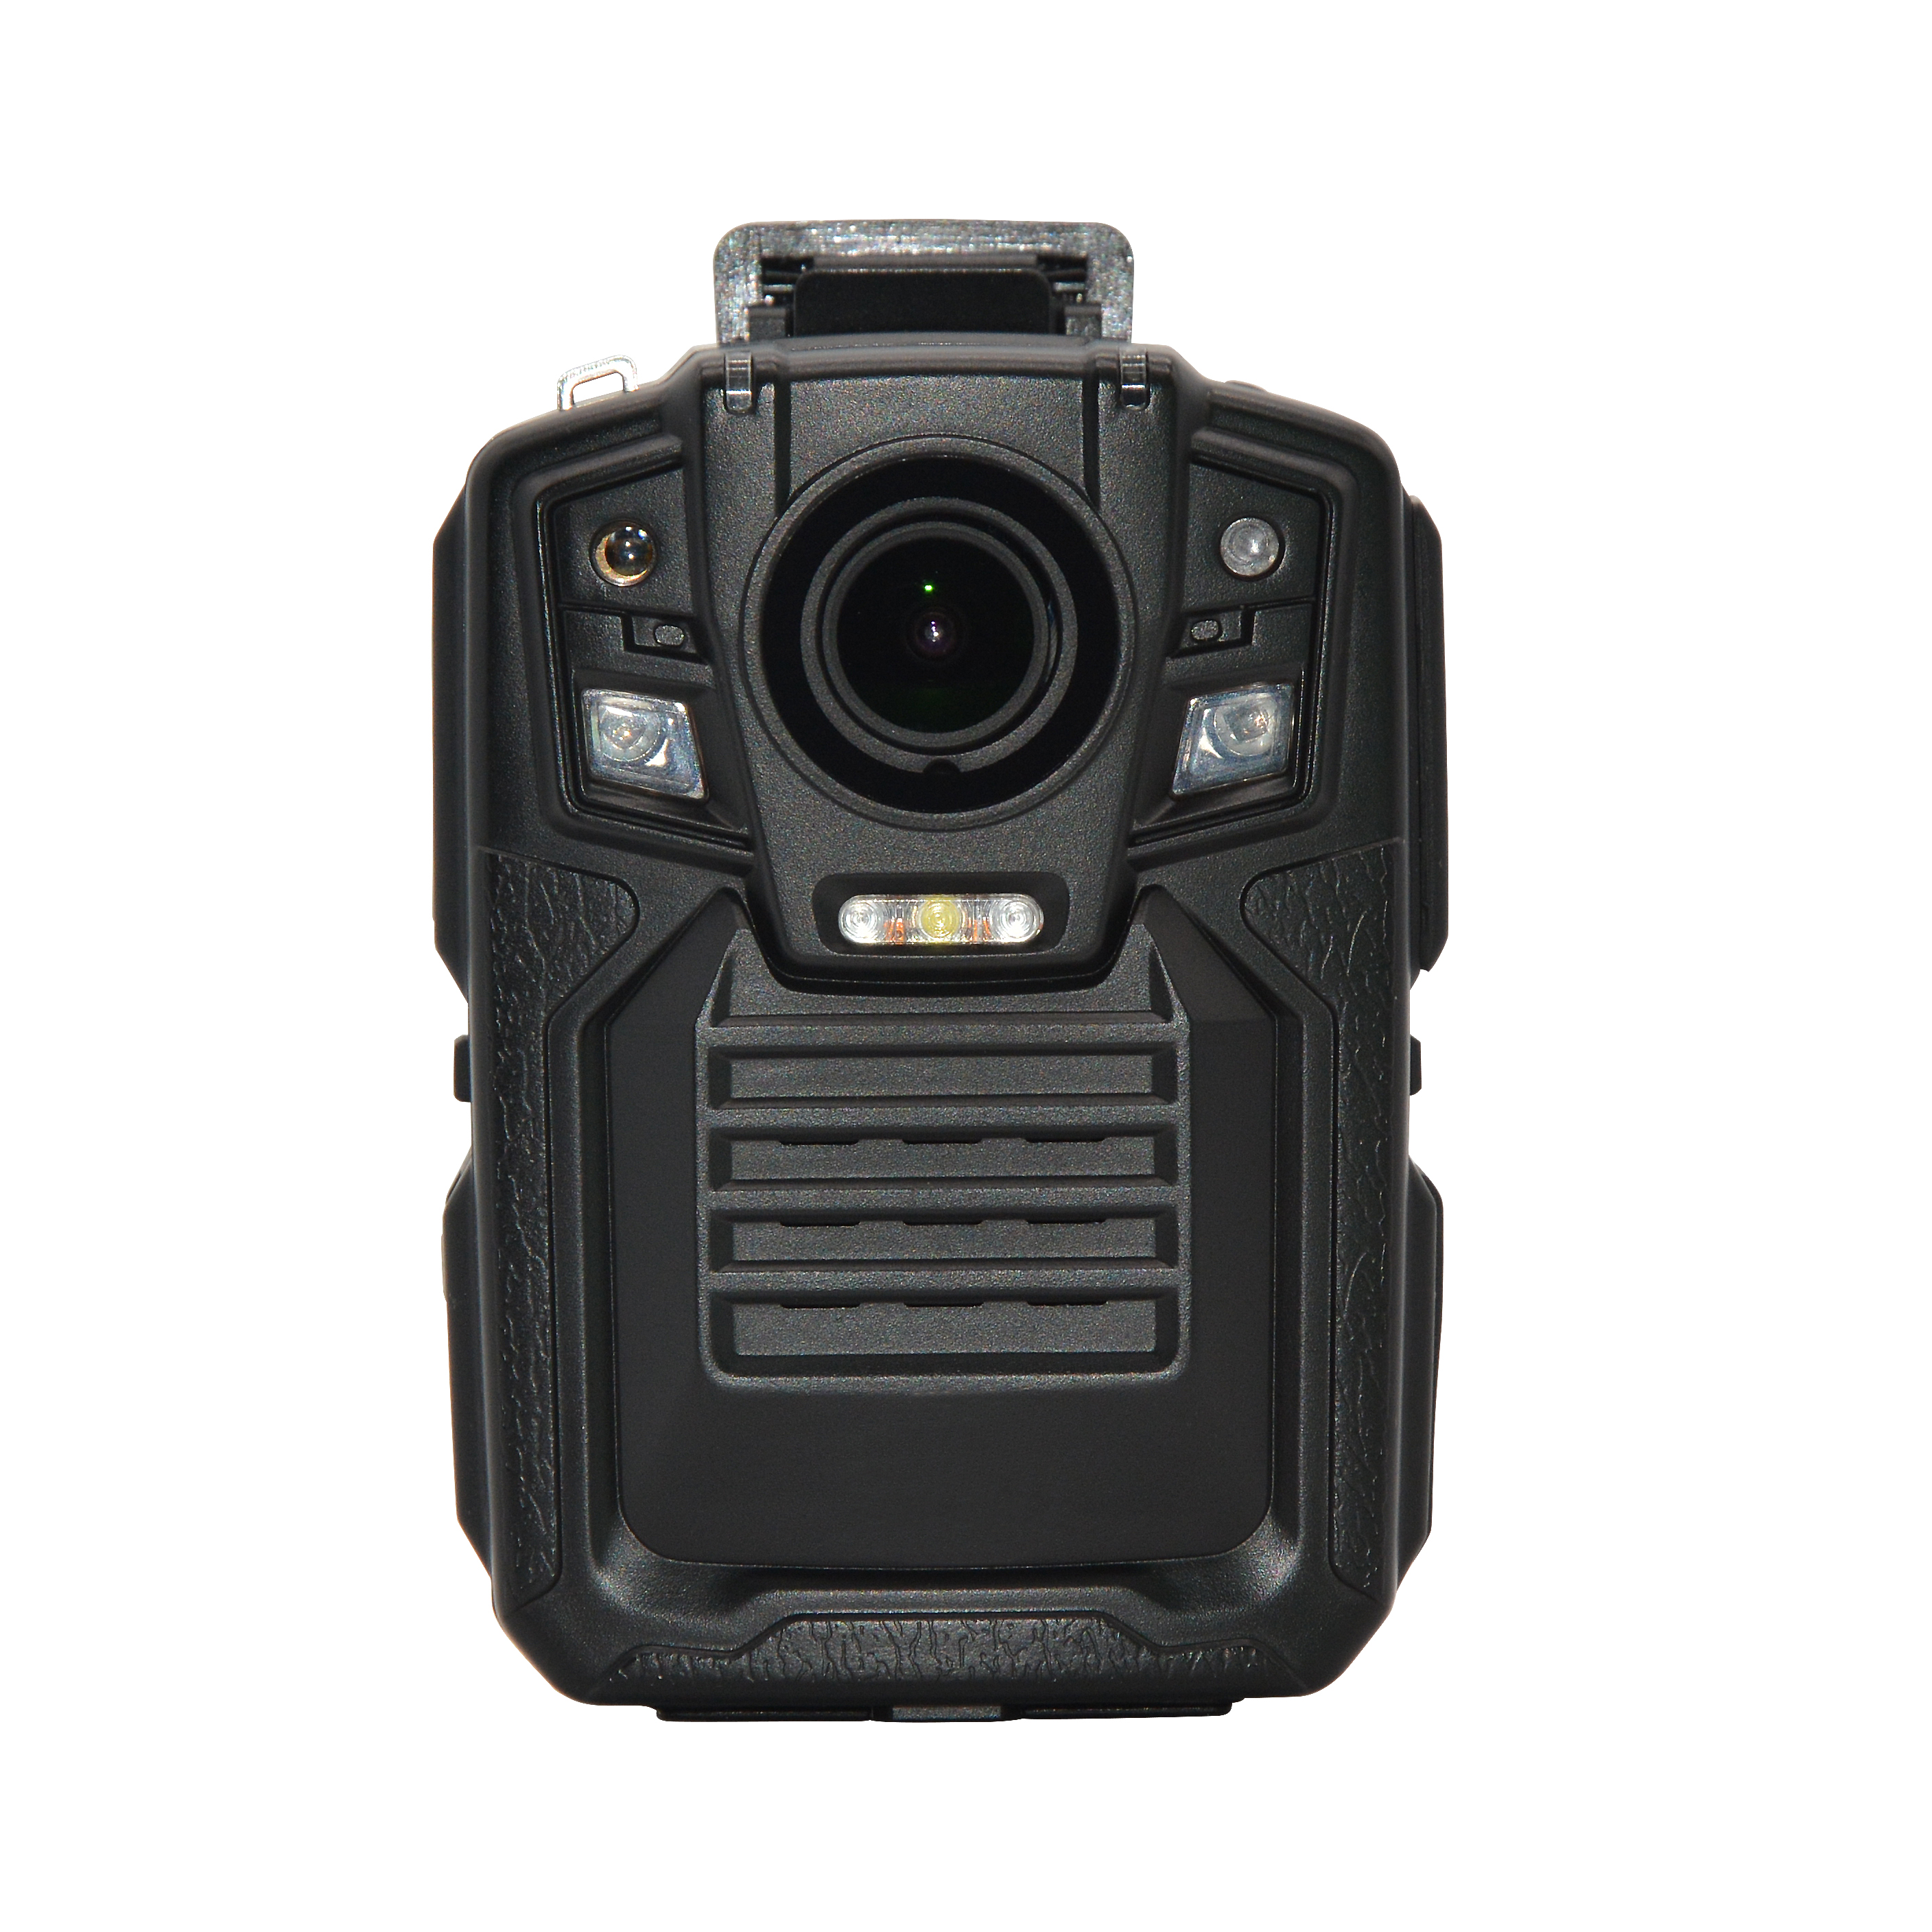 High Quality 1296P Portable Police Body Worn Camera with GPS 4G WIFI